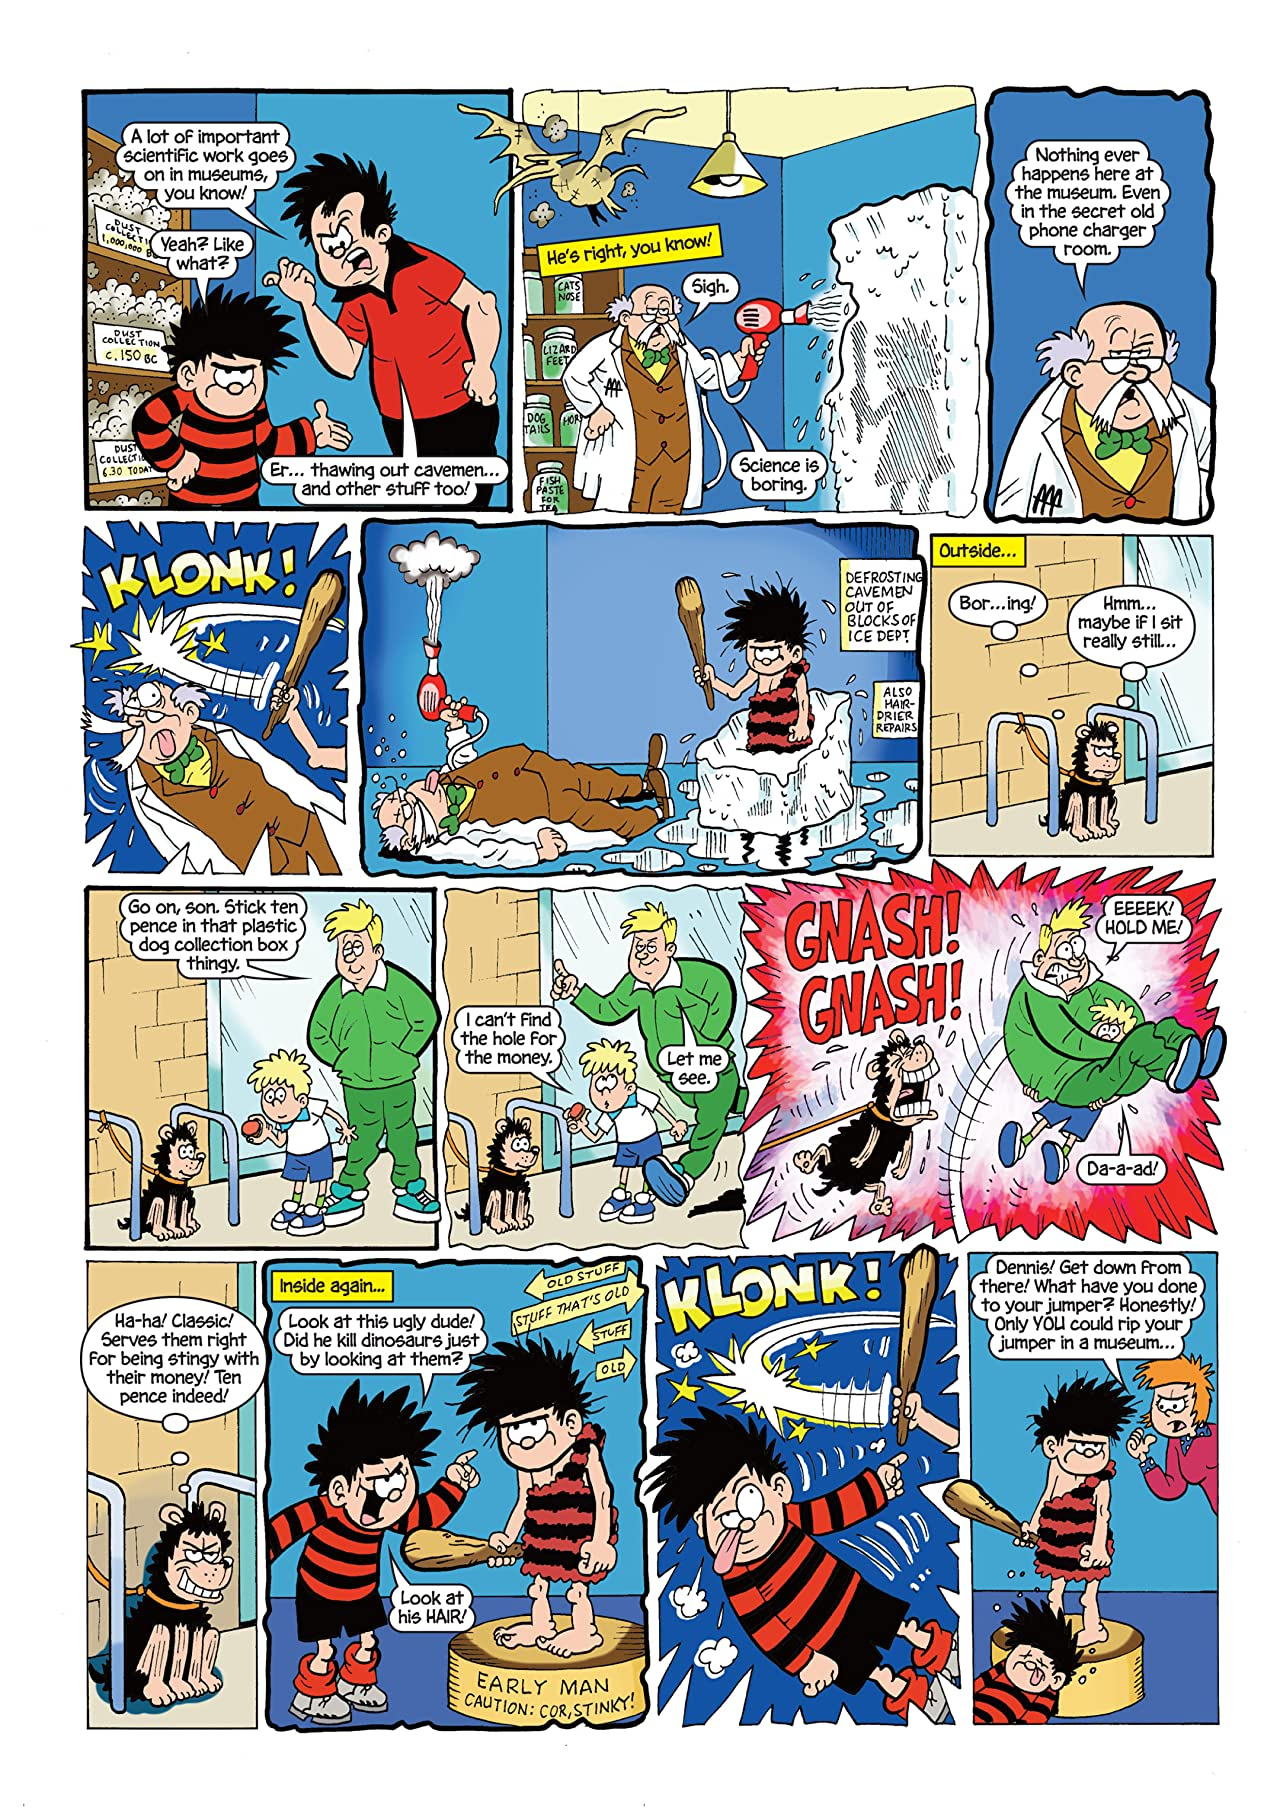 The Beano presents Dennis the Menace and Gnasher #6: Monster Menaces